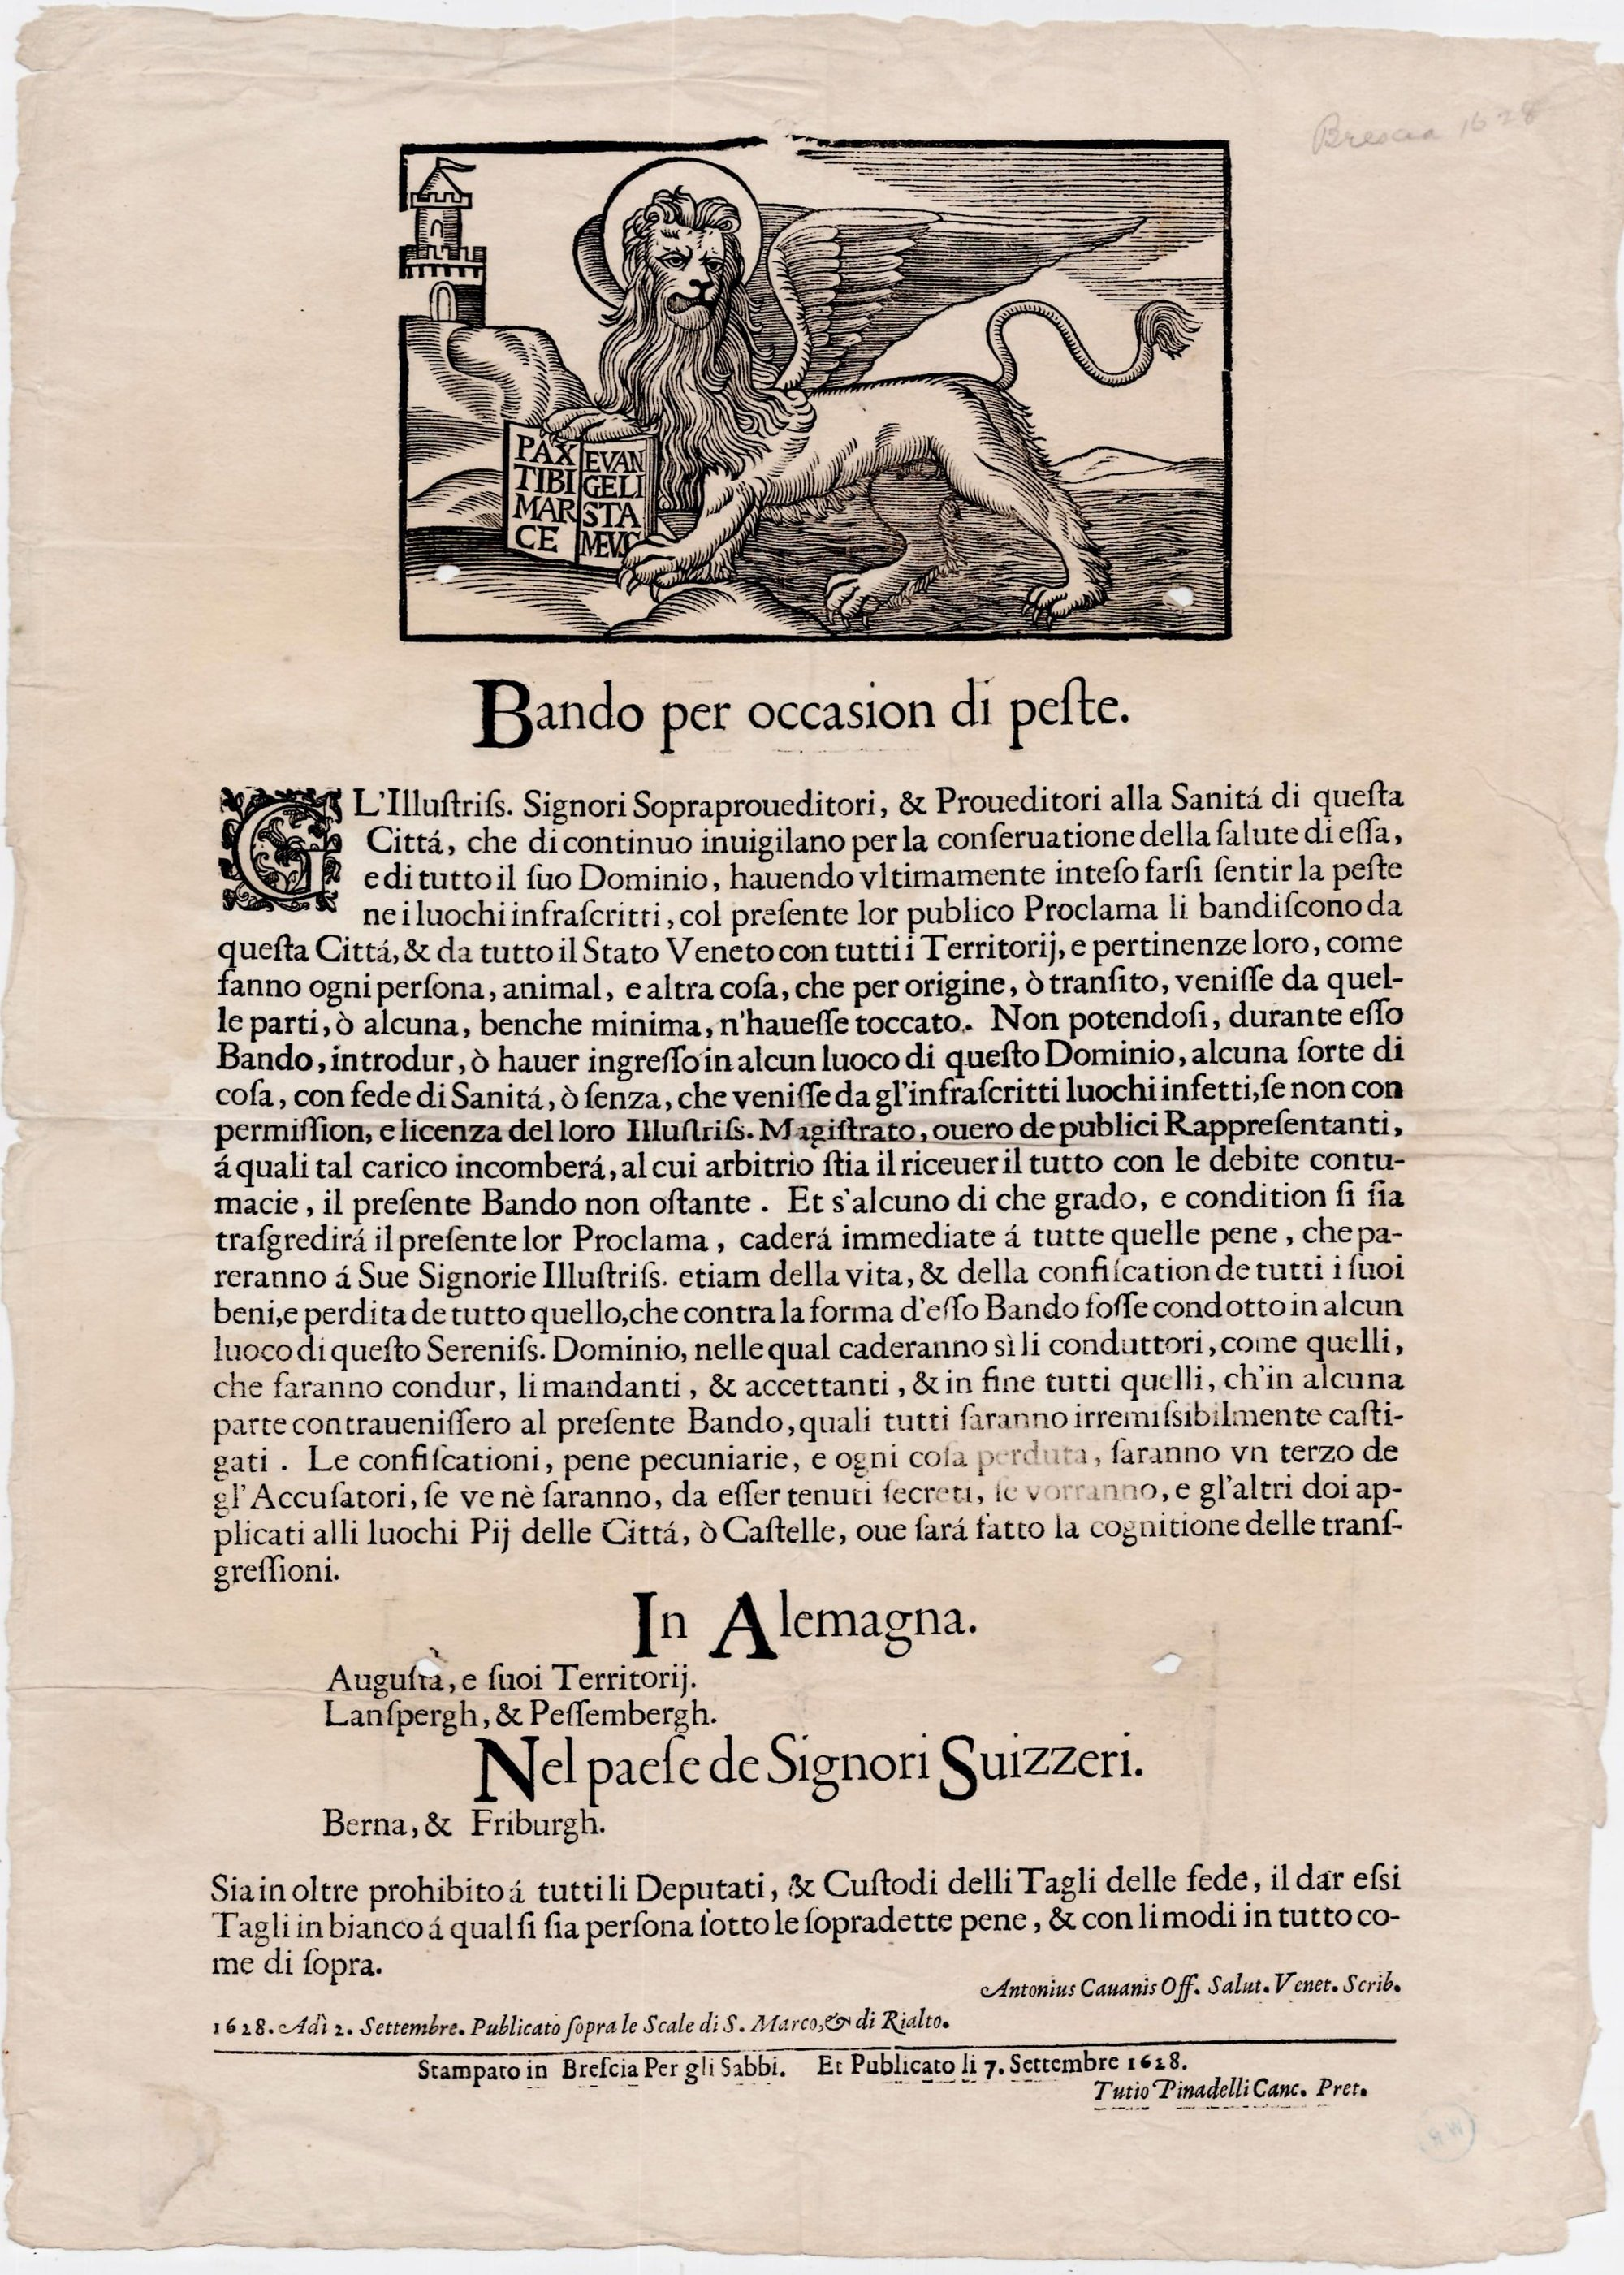 Extraordinary broadside from a time of plague - Rare & Antique Maps